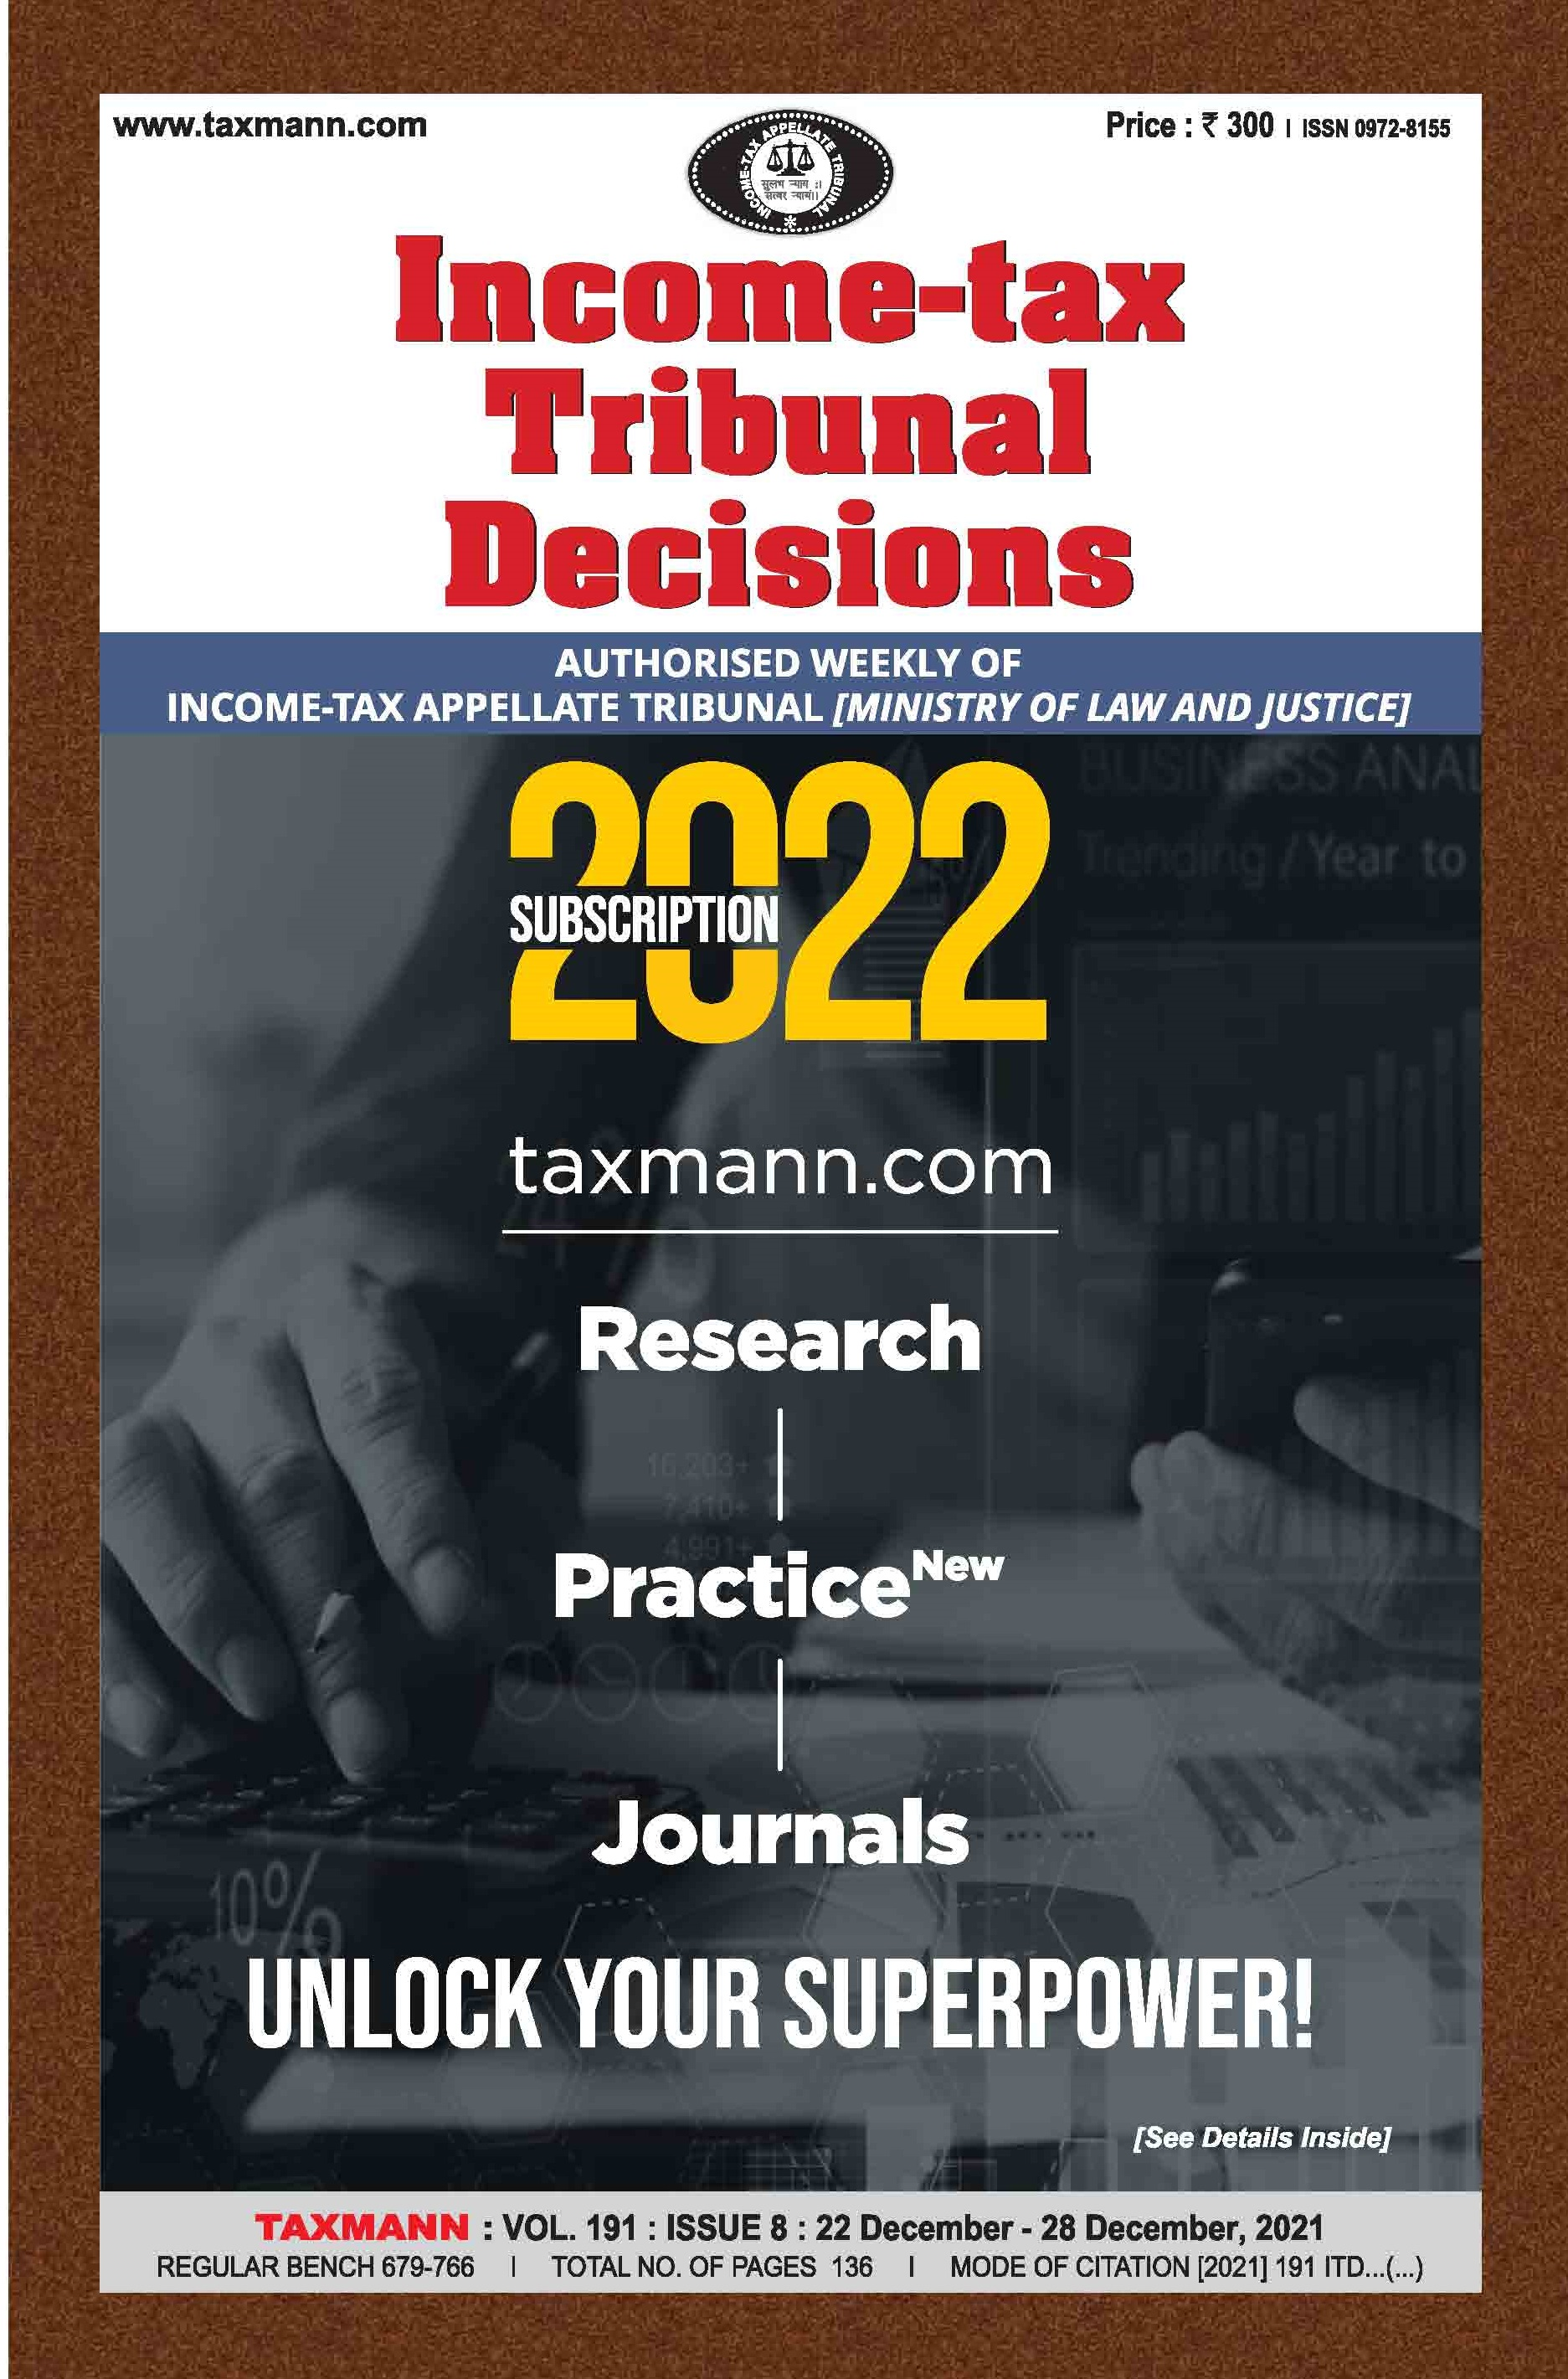 Income-tax Tribunal Decisions (Weekly) with 5 Daily e-Mail Services